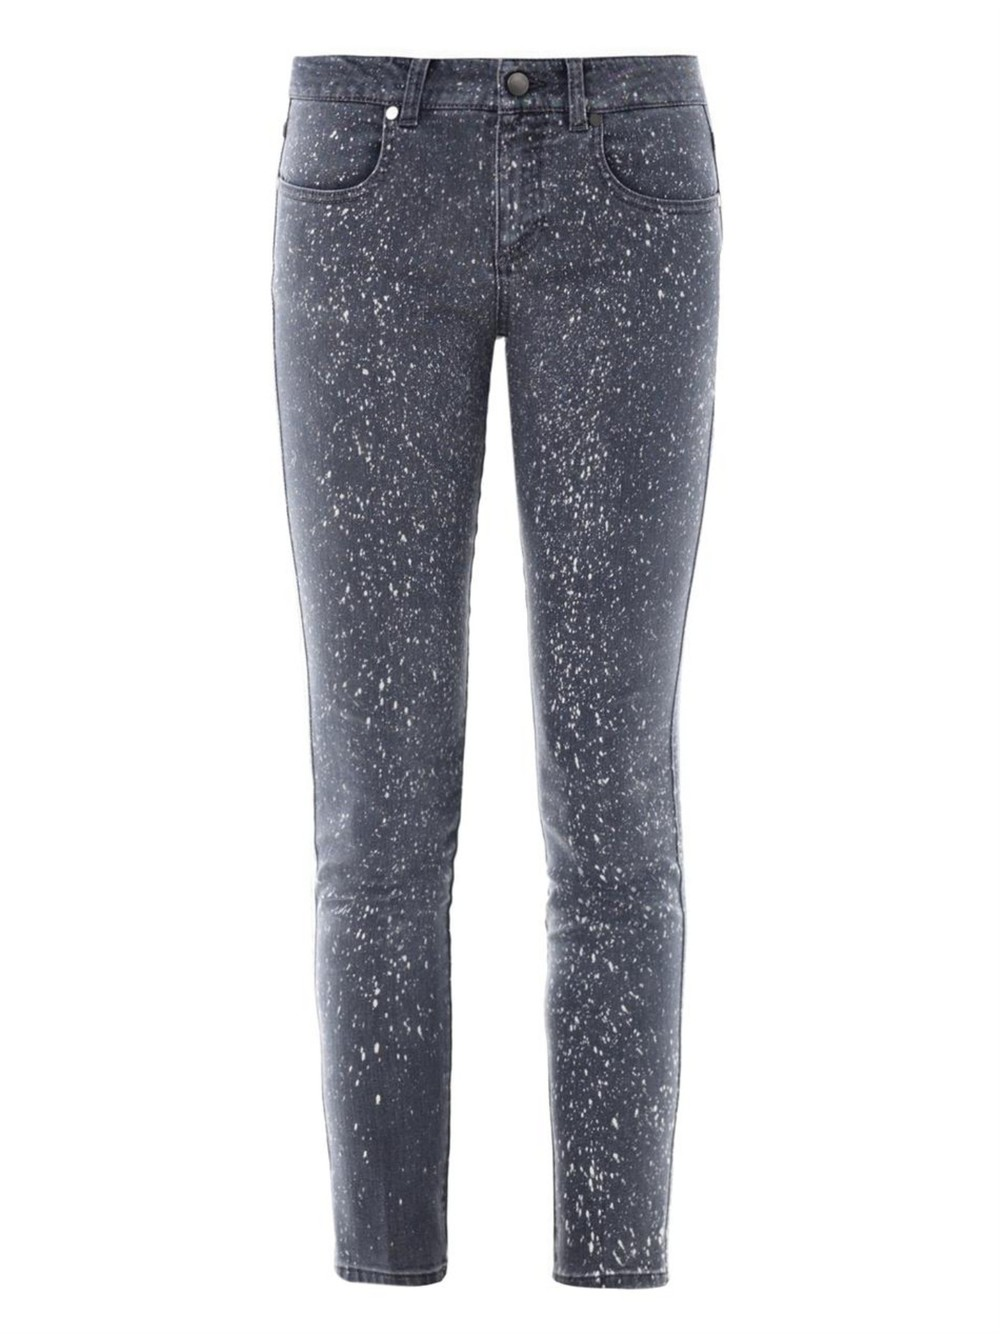 http://www.matchesfashion.com/us/products/Stella-McCartney-Splatter-print-mid-rise-skinny-jeans-165205